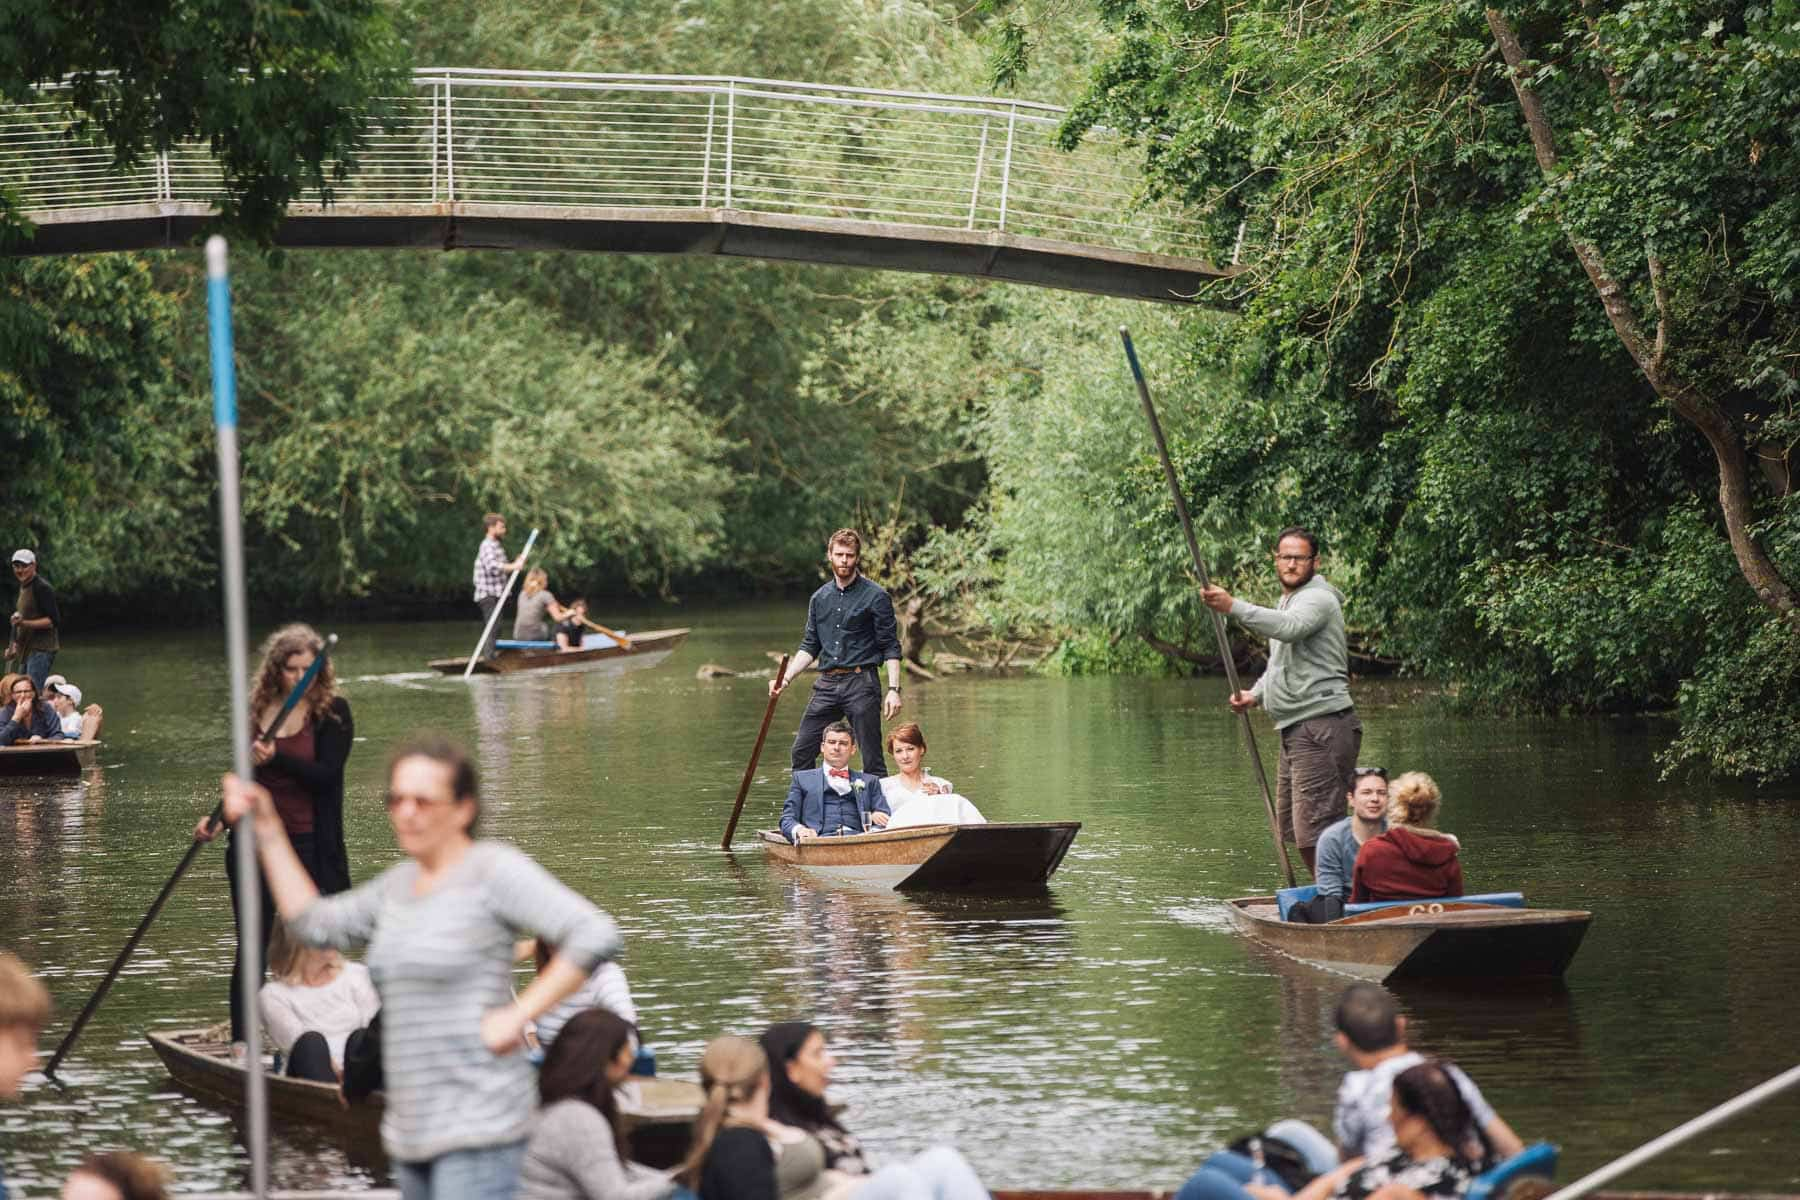 The river is full of punts, bride and groom arrive on one of them